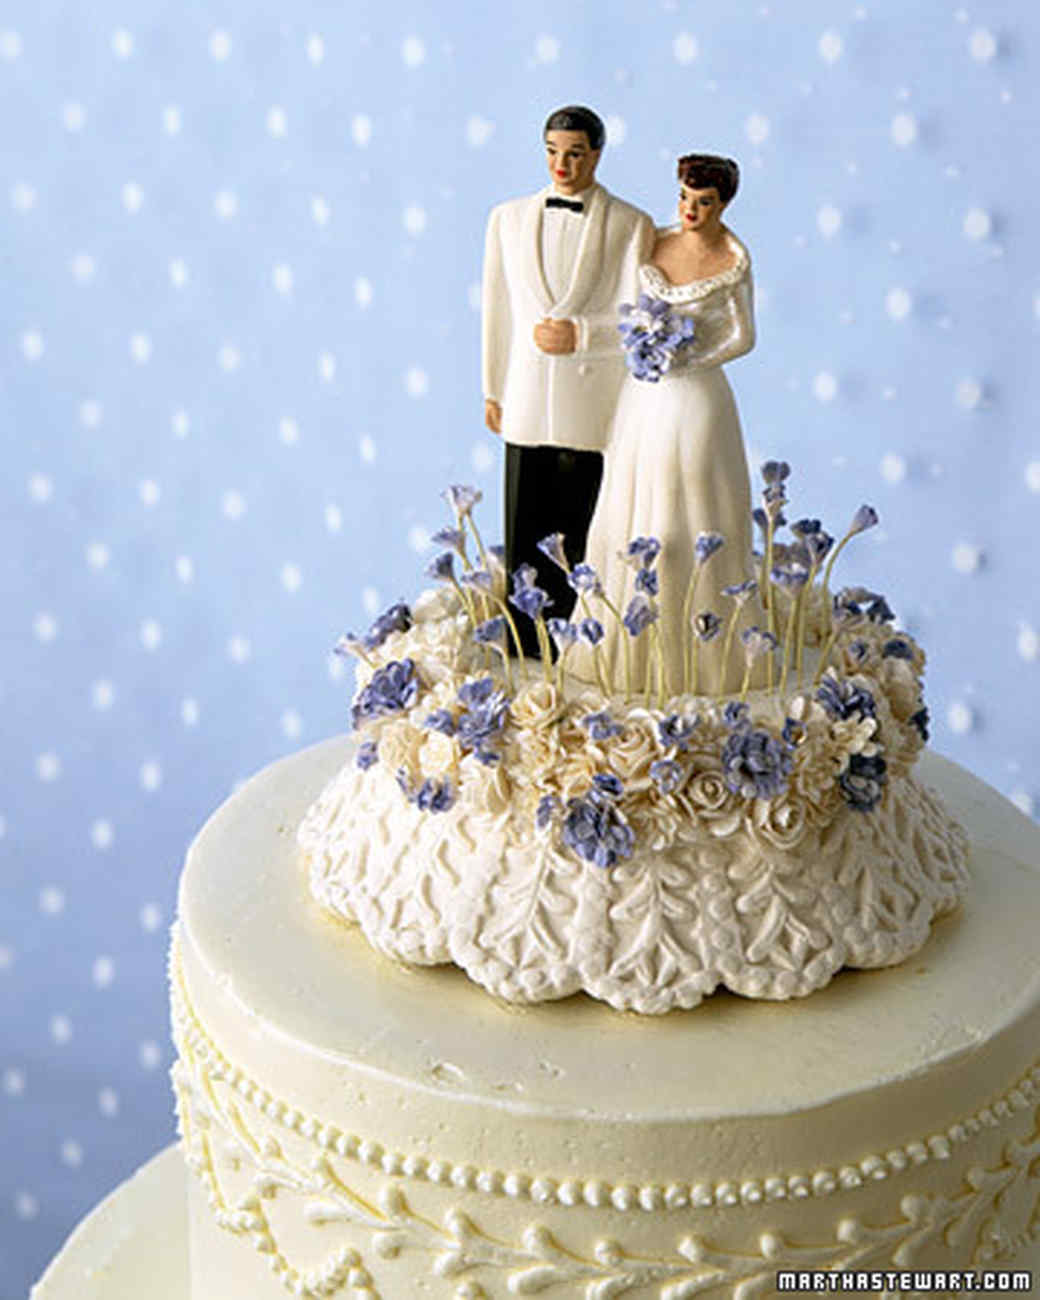 Cake Toppers: Vintage Bride and Groom